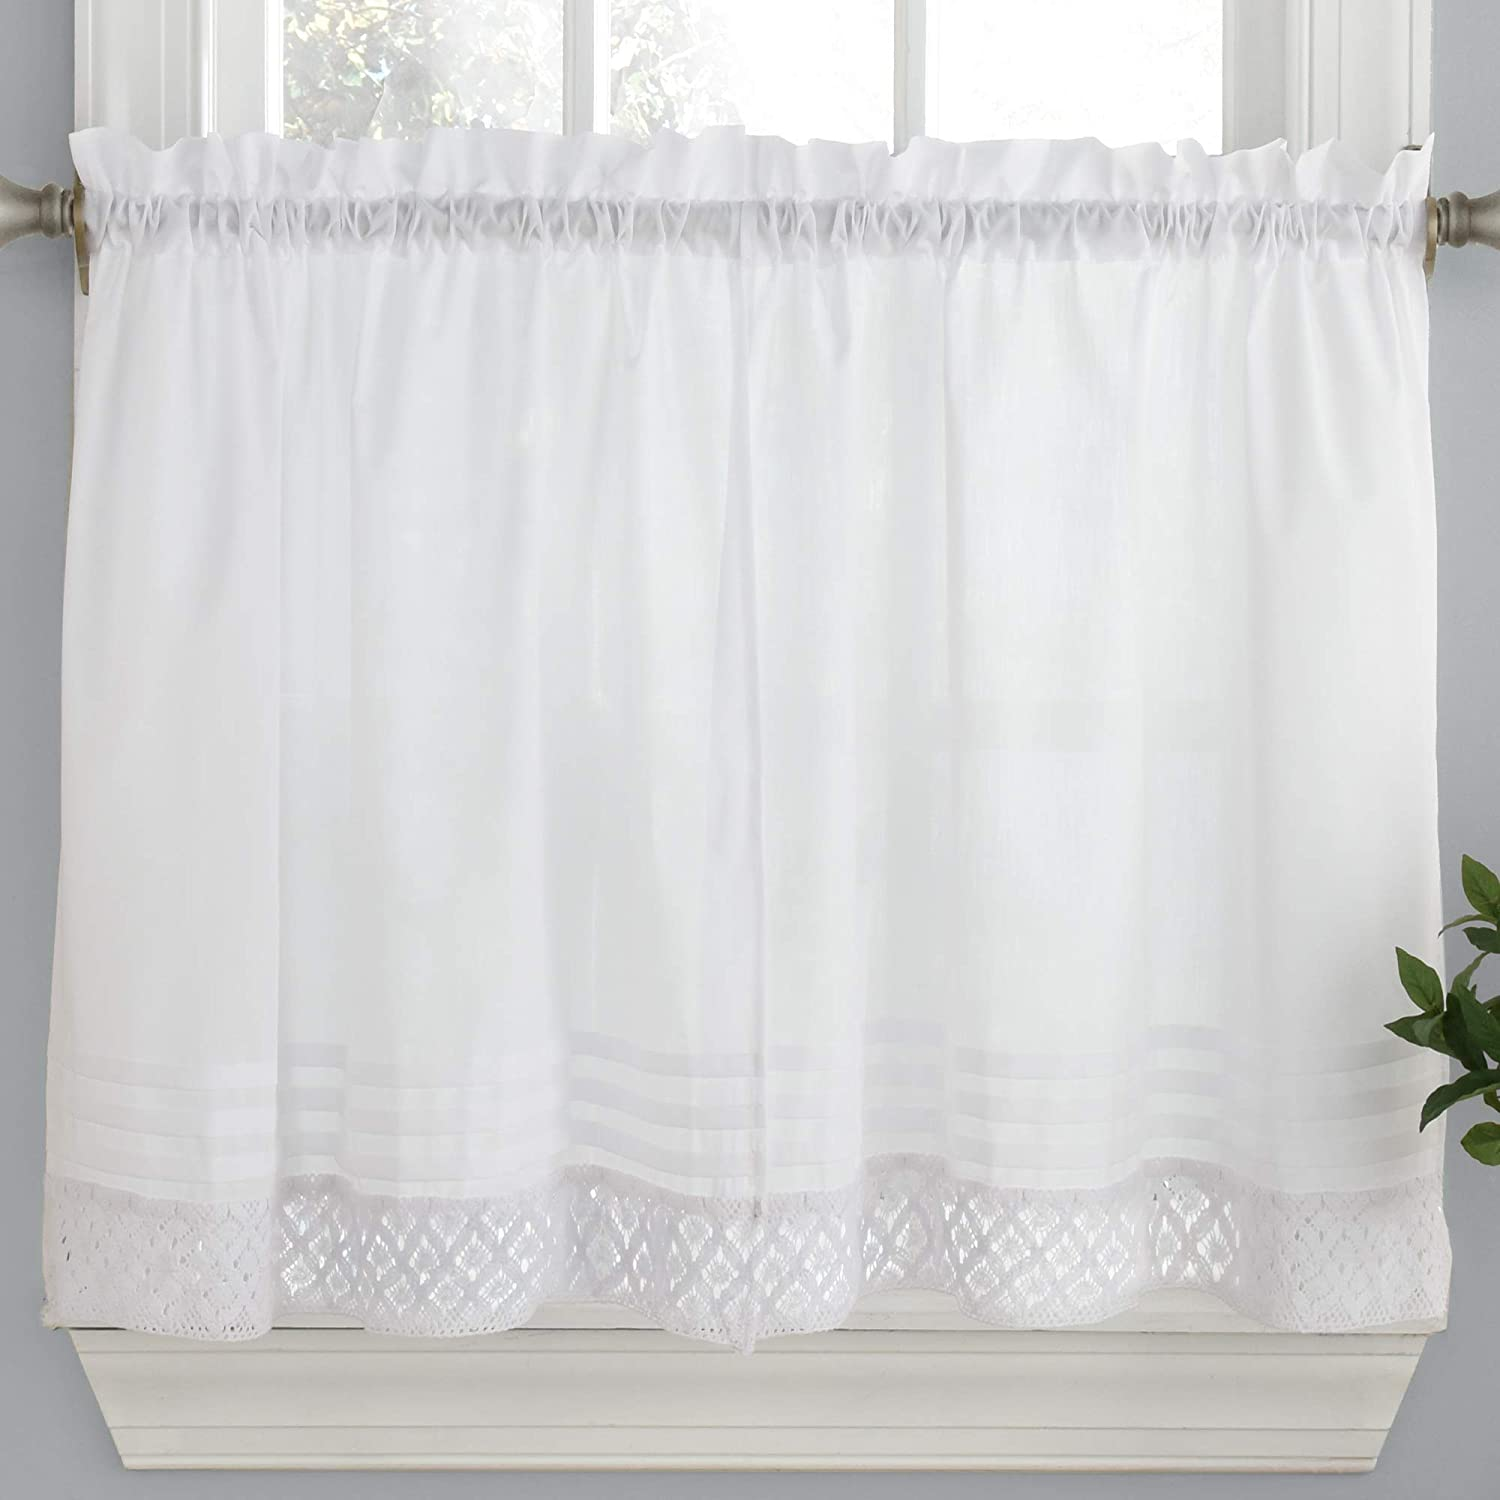 """Sweet Home Collection Kitchen Window Curtain Tier, Swag, or Valance Treatment in Stylish and Unique Patterns and Designs for All Home Décor 36"""", Crochet White"""